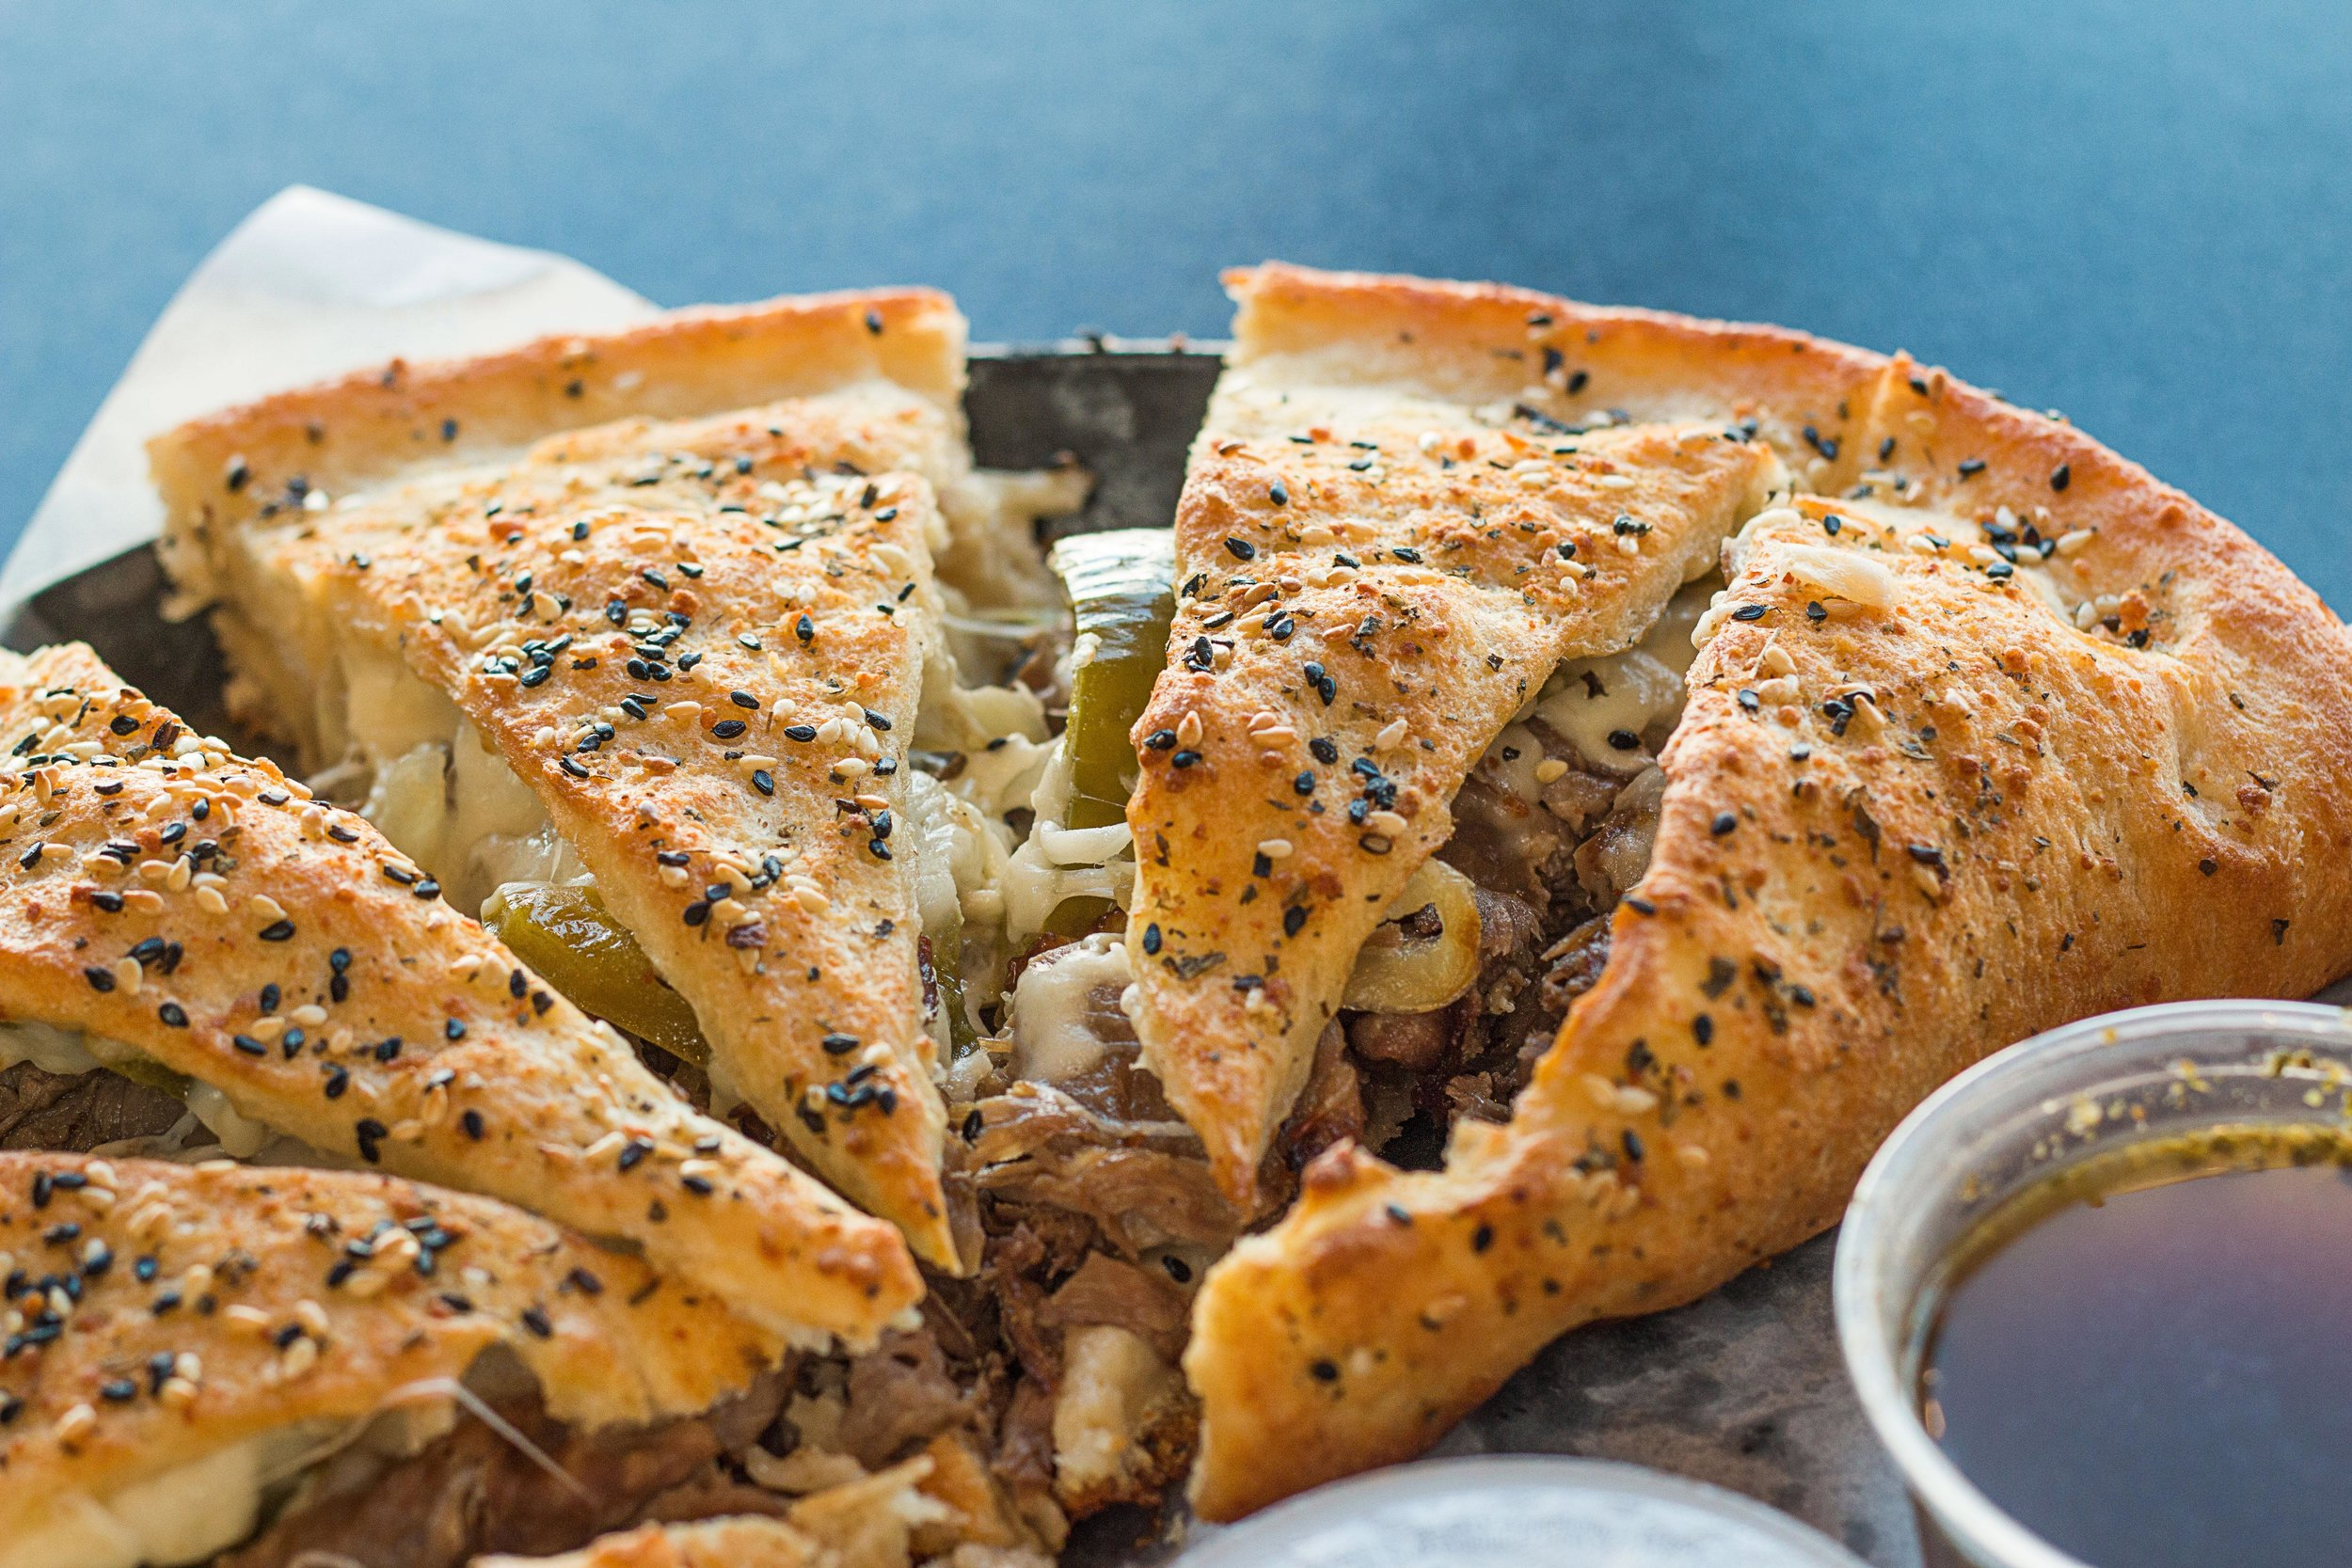 Chicago Beef Calzone- Prepared with our freshly made pizza dough then stuffed with Chicago-Style Beef, onions, bell peppers, cheese, & giardiniera. Served with 3 different dipping sauces!